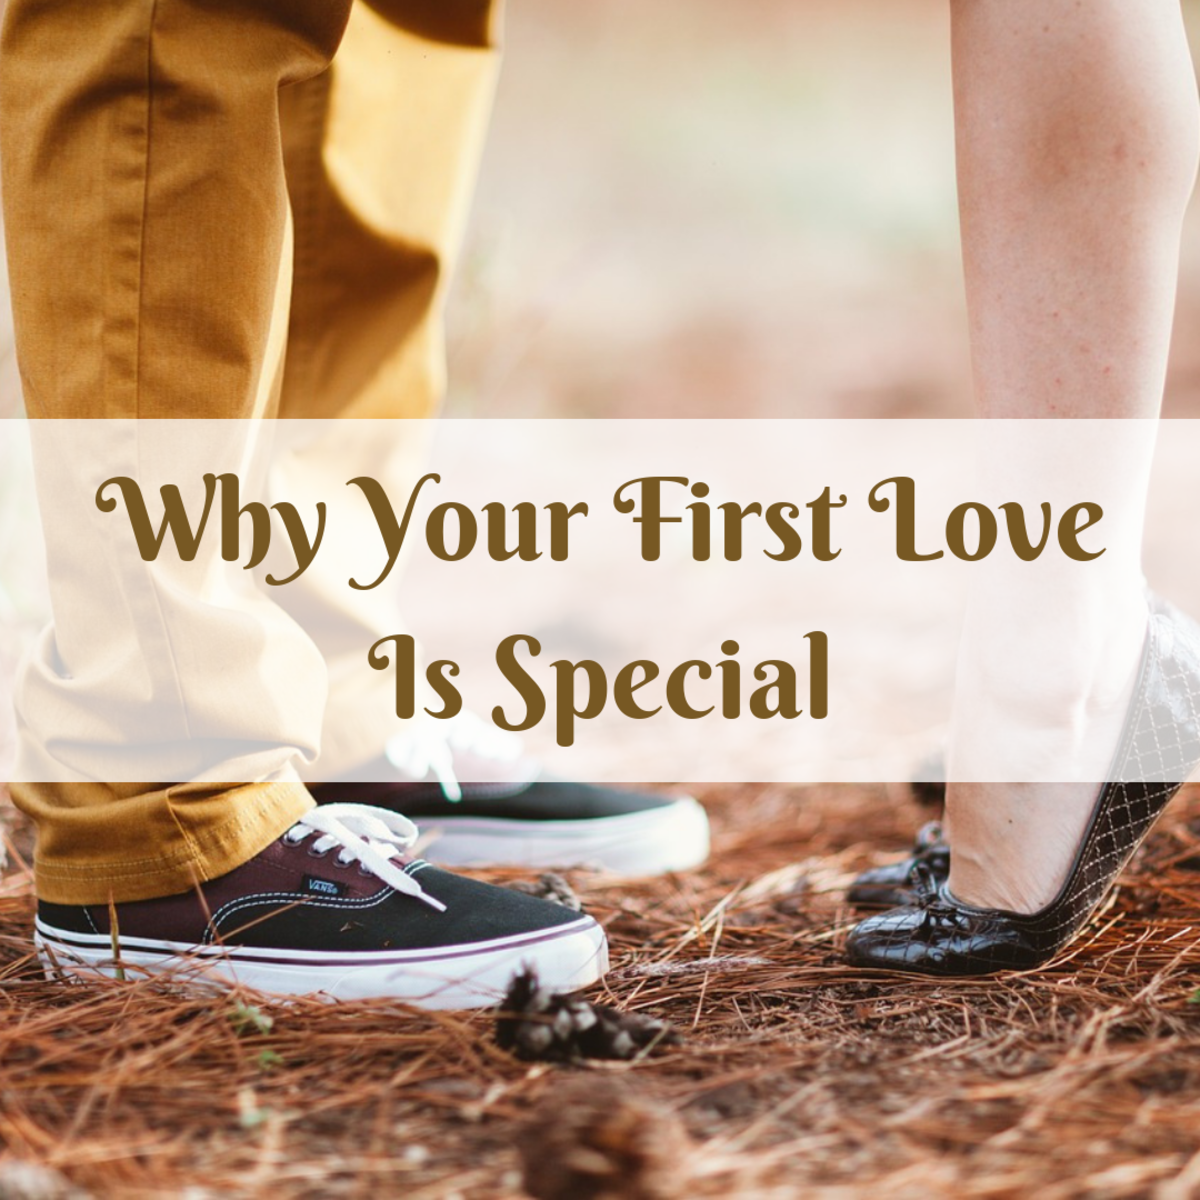 Your first love will always have a special place in your heart.